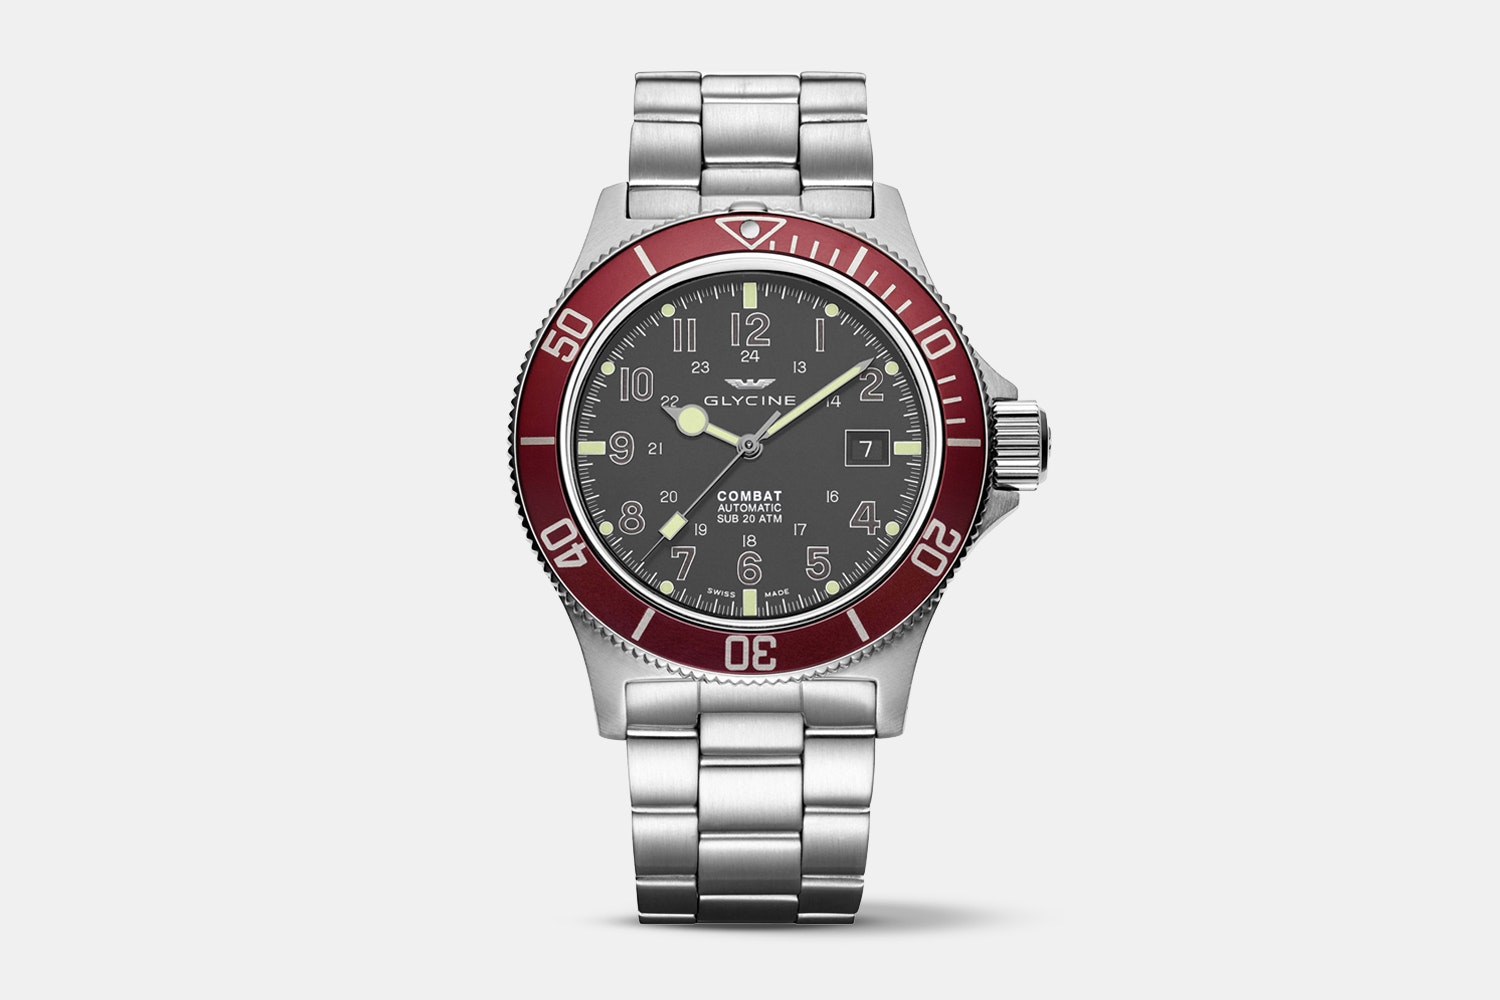 Glycine Combat Sub Automatic Watch